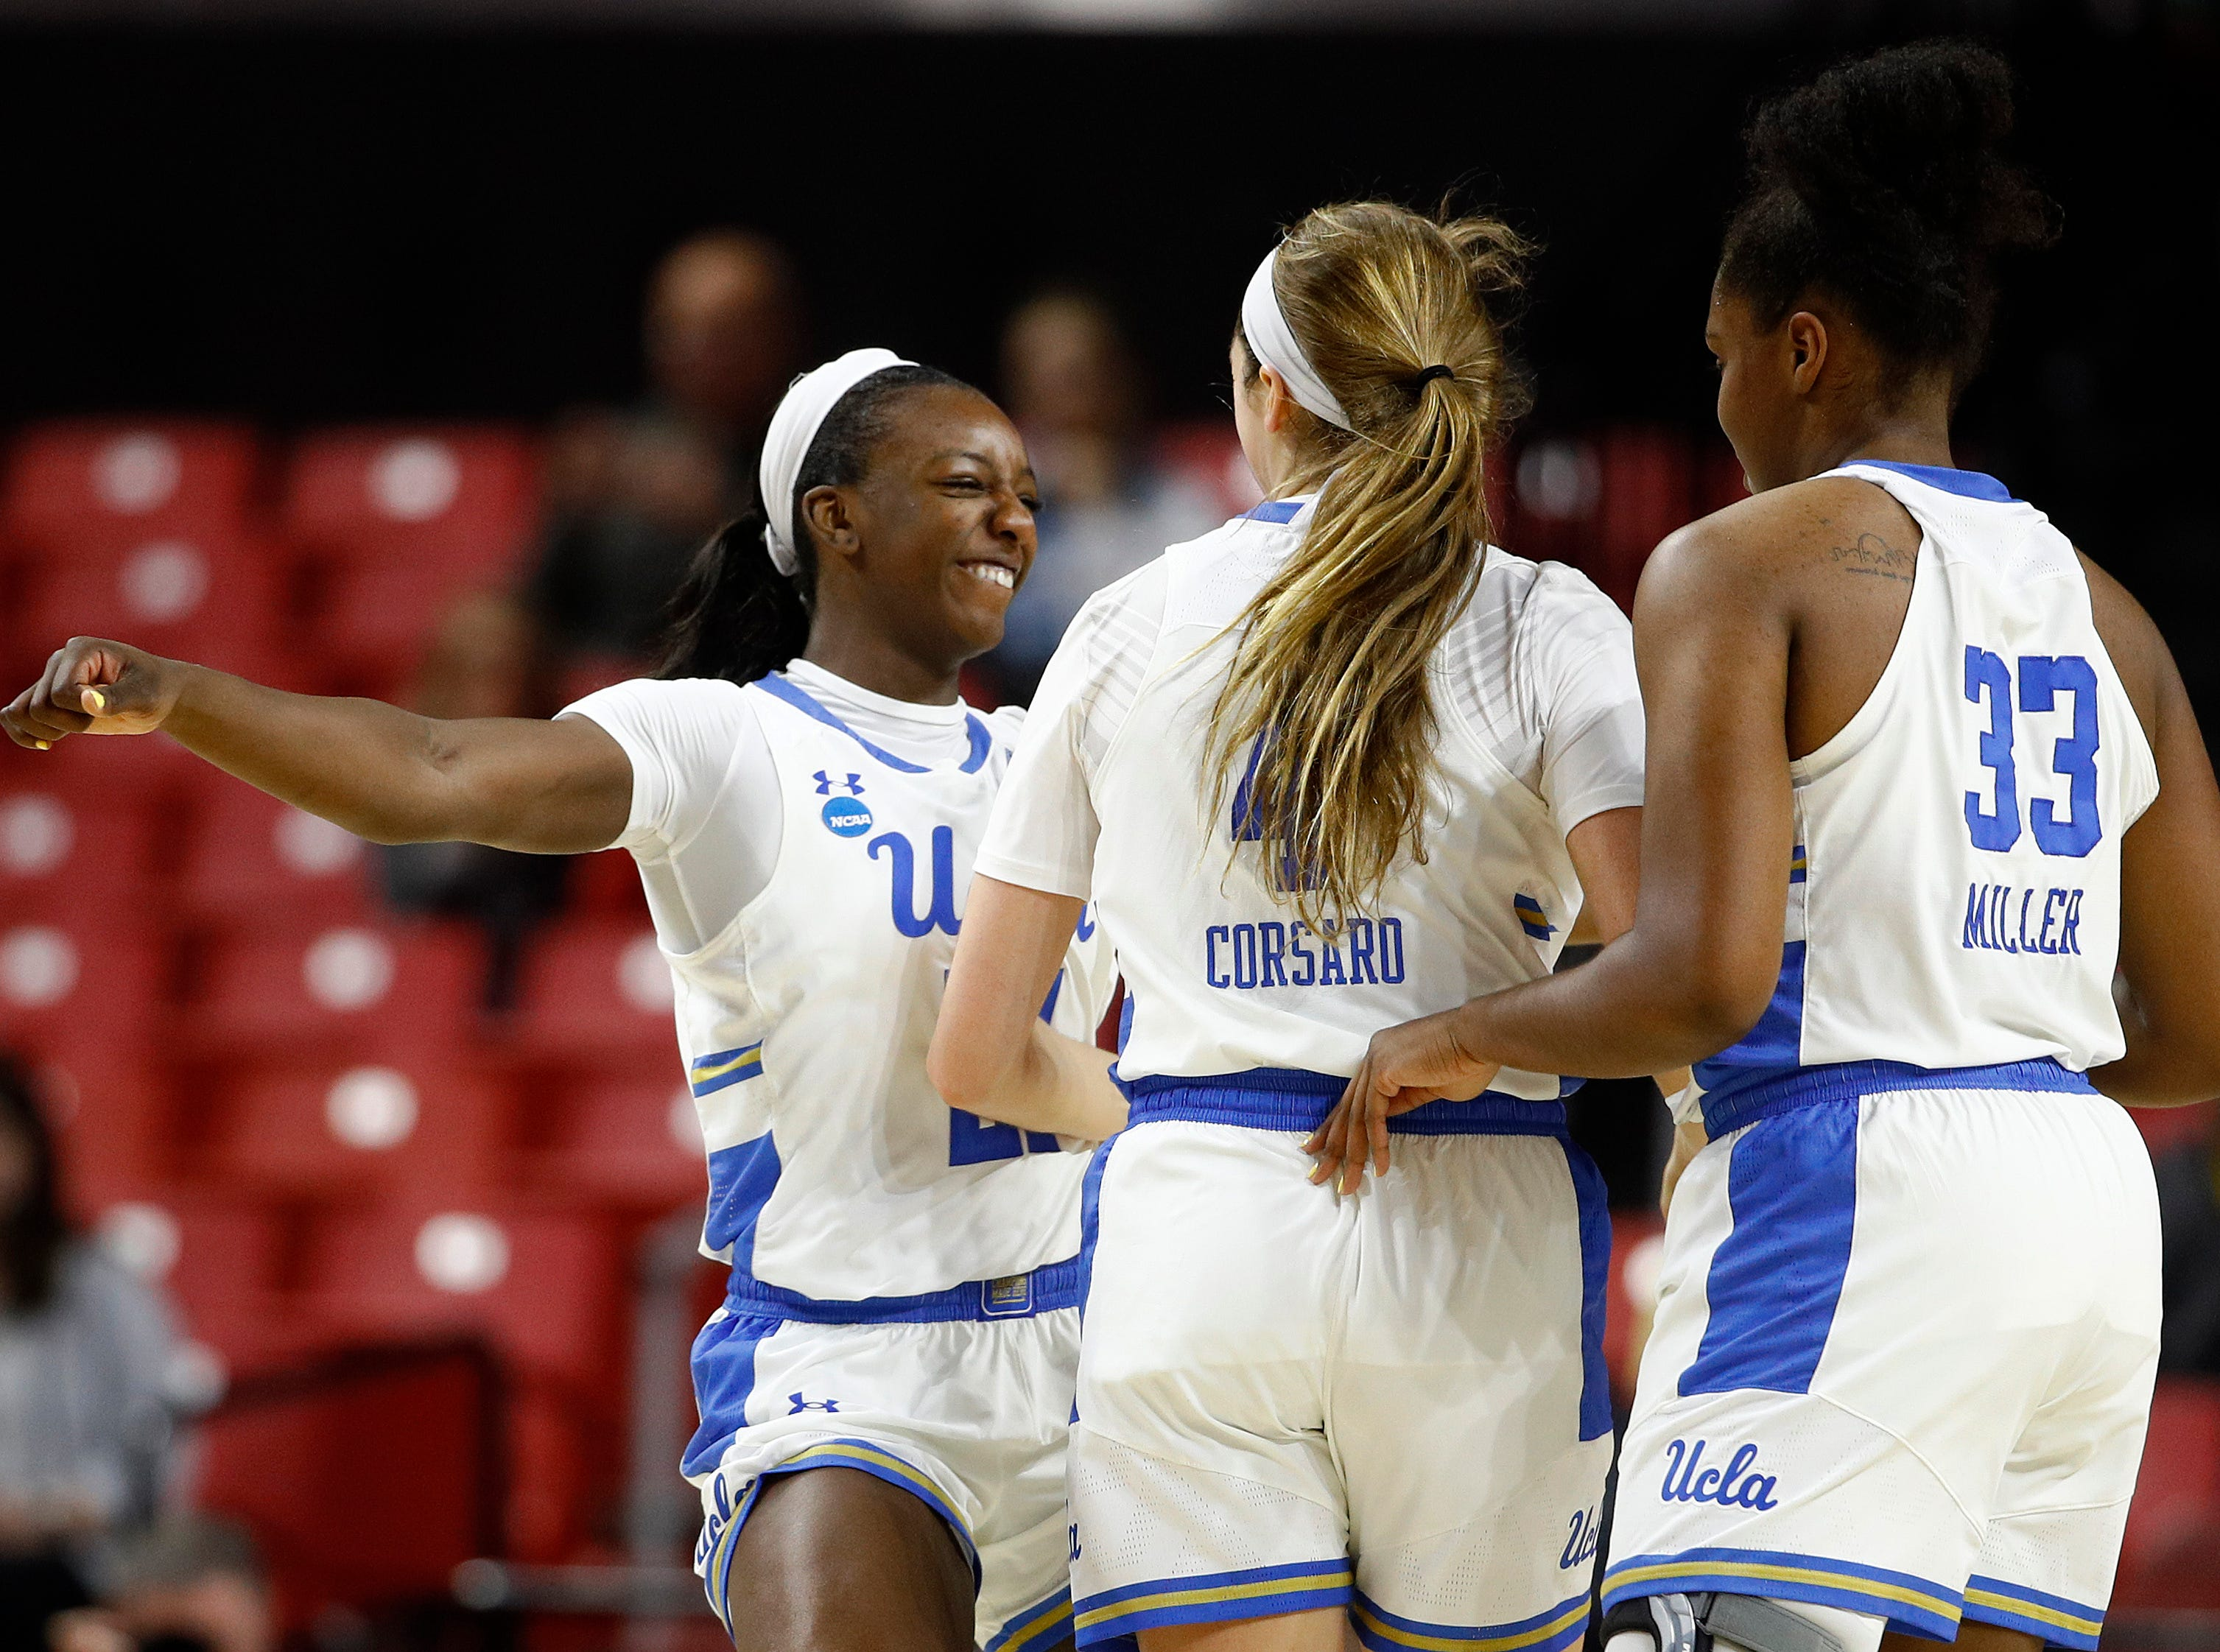 UCLA forward Michaela Onyenwere, left, celebrates with teammates Lindsey Corsaro and Lauryn Miller after Corsaro scored and Tennessee called a timeout in the first half of first-round game in the NCAA women's college basketball tournament, Saturday, March 23, 2019, in College Park, Md. UCLA won 89-77.